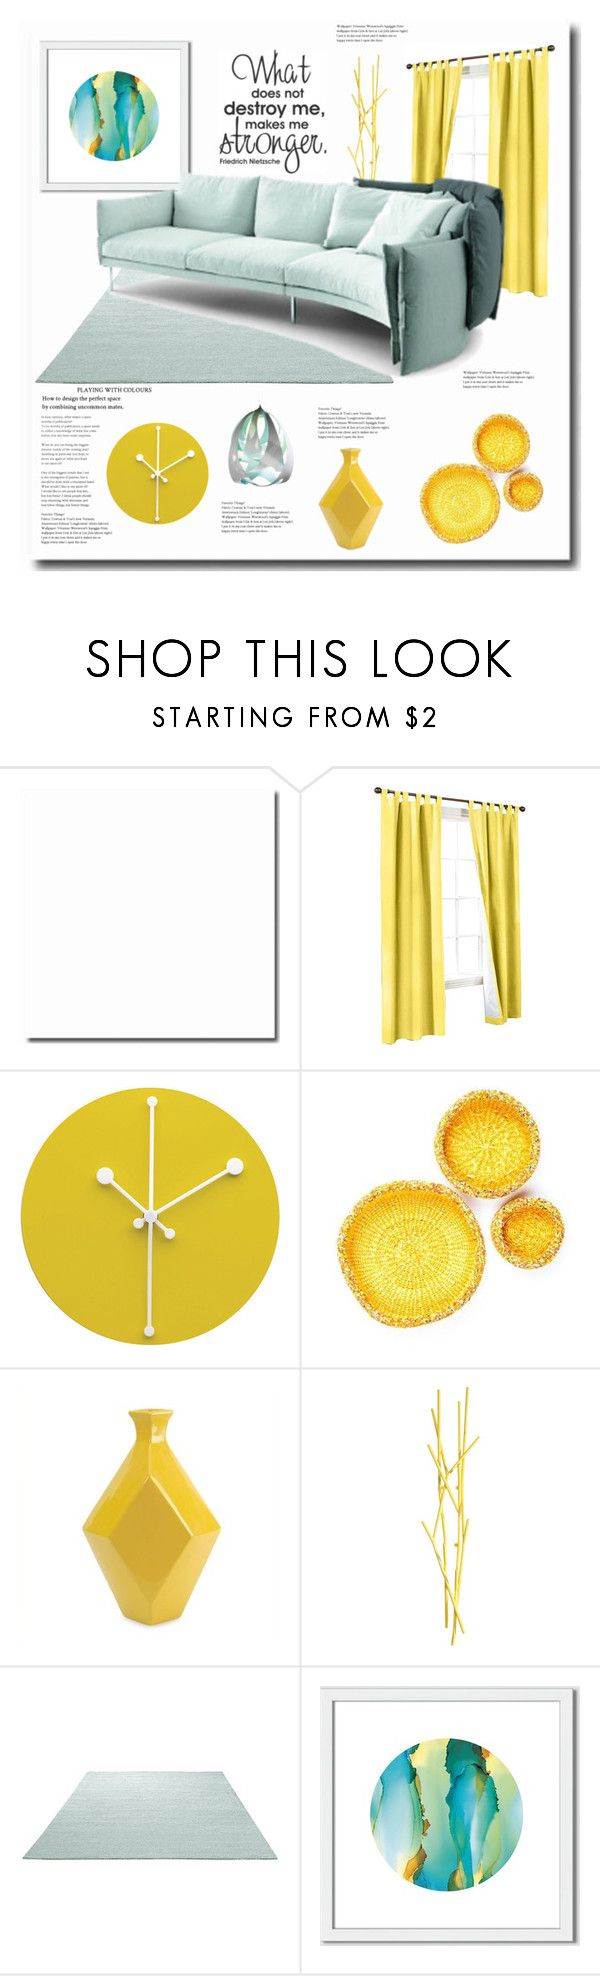 """Yellow"" by jana-masarovicova ❤ liked on Polyvore featuring interior, interiors, interior design, home, home decor, interior decorating, Alessi, IMAX Corporation, Covo and ESPRIT"